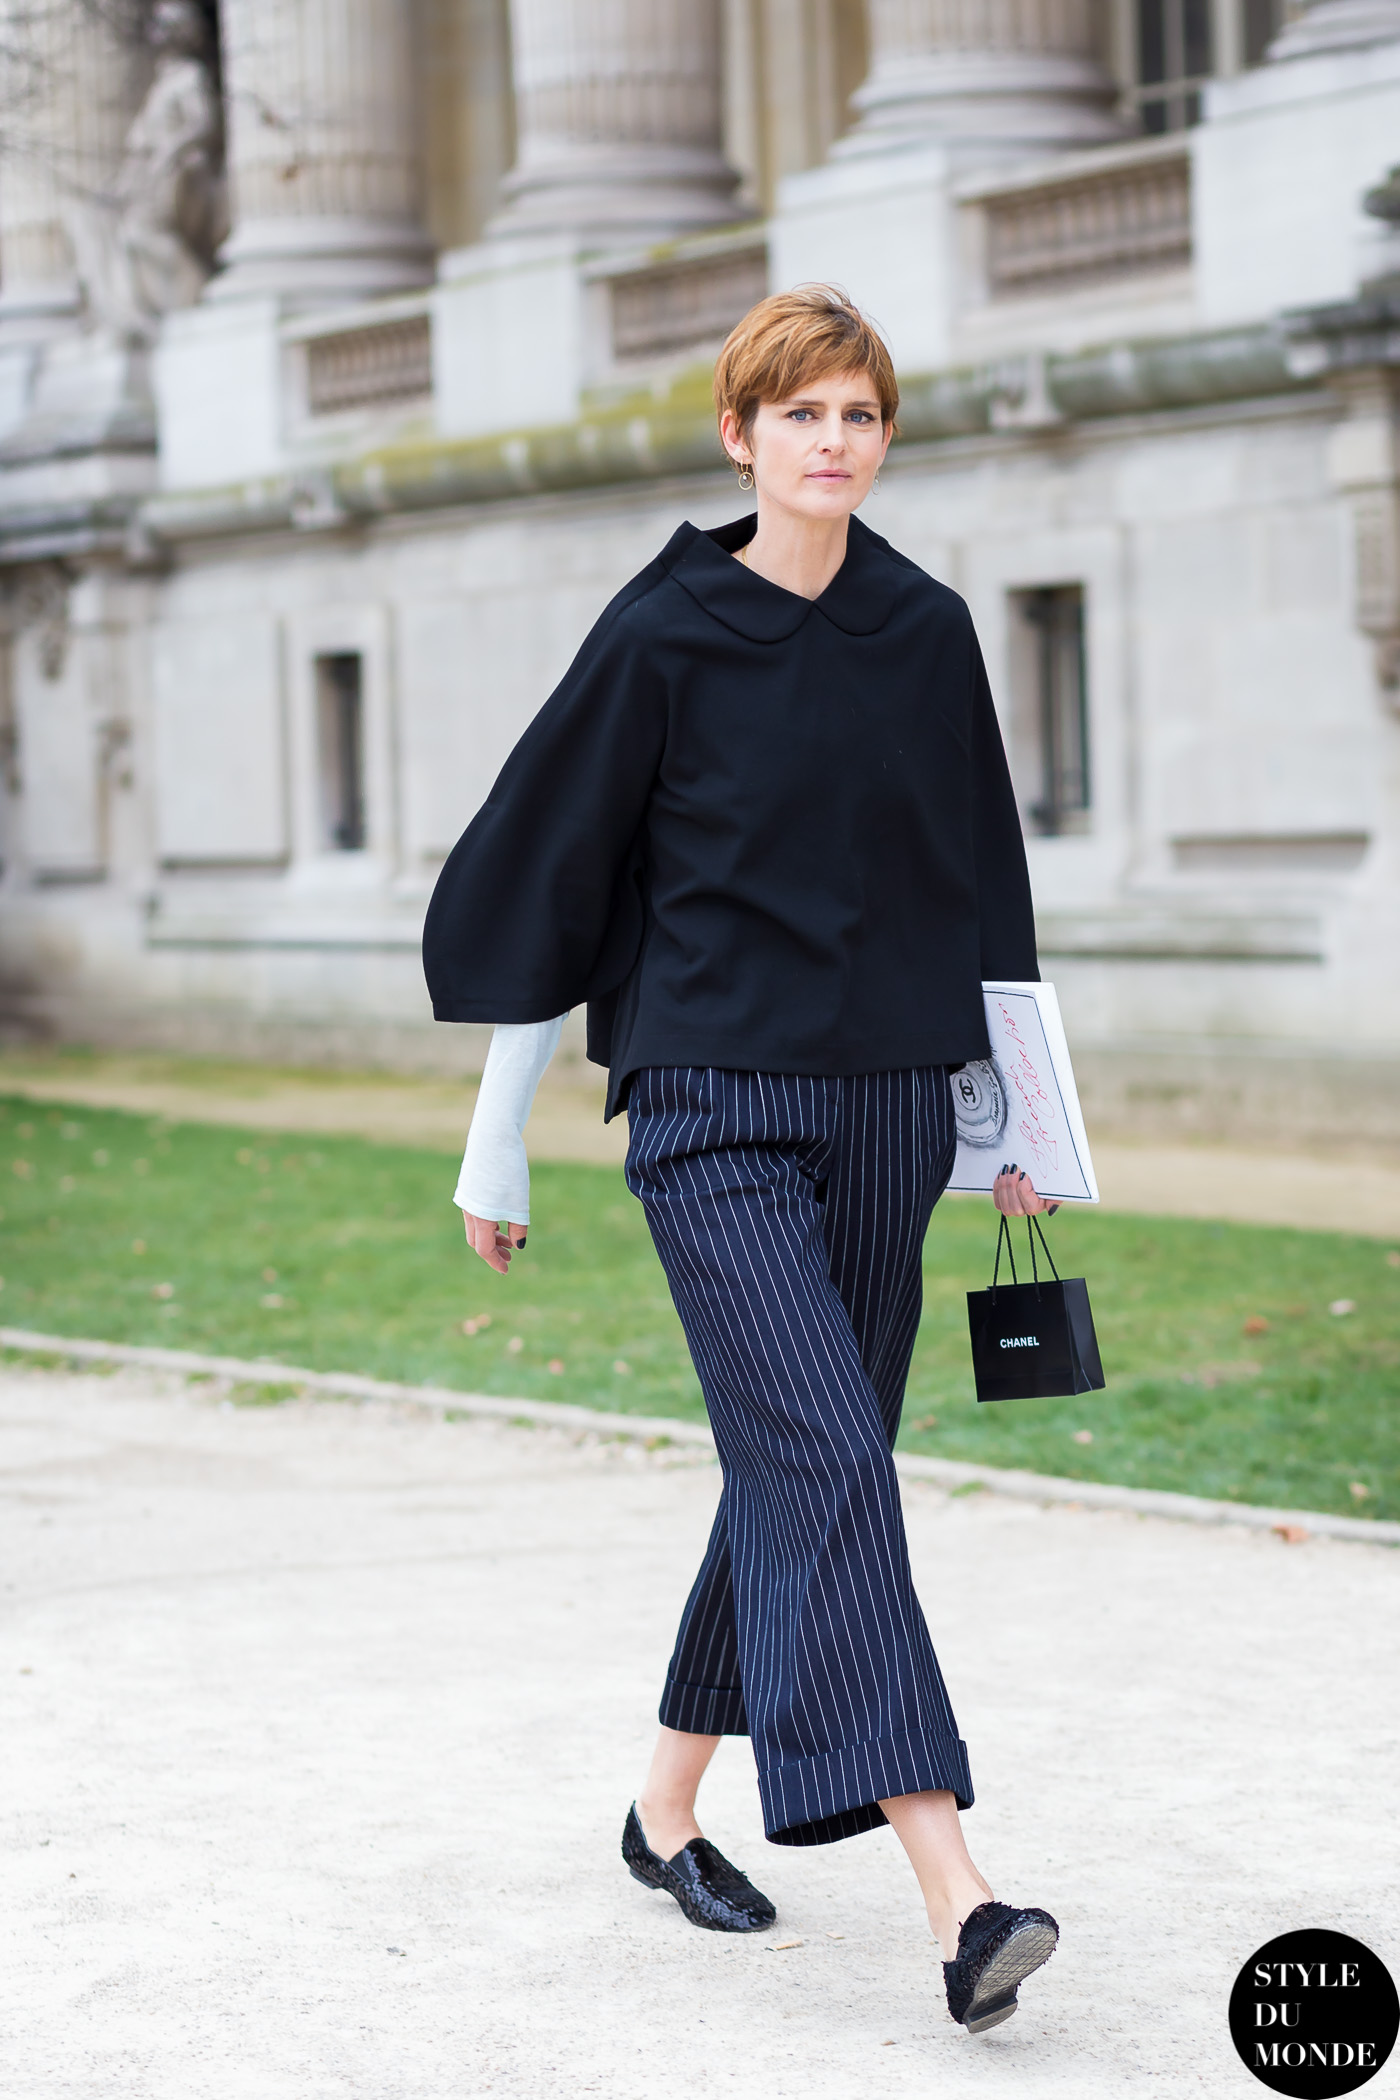 Stella Tennant Street Style Street Fashion Streetsnaps by STYLEDUMONDE Street Style Fashion Blog